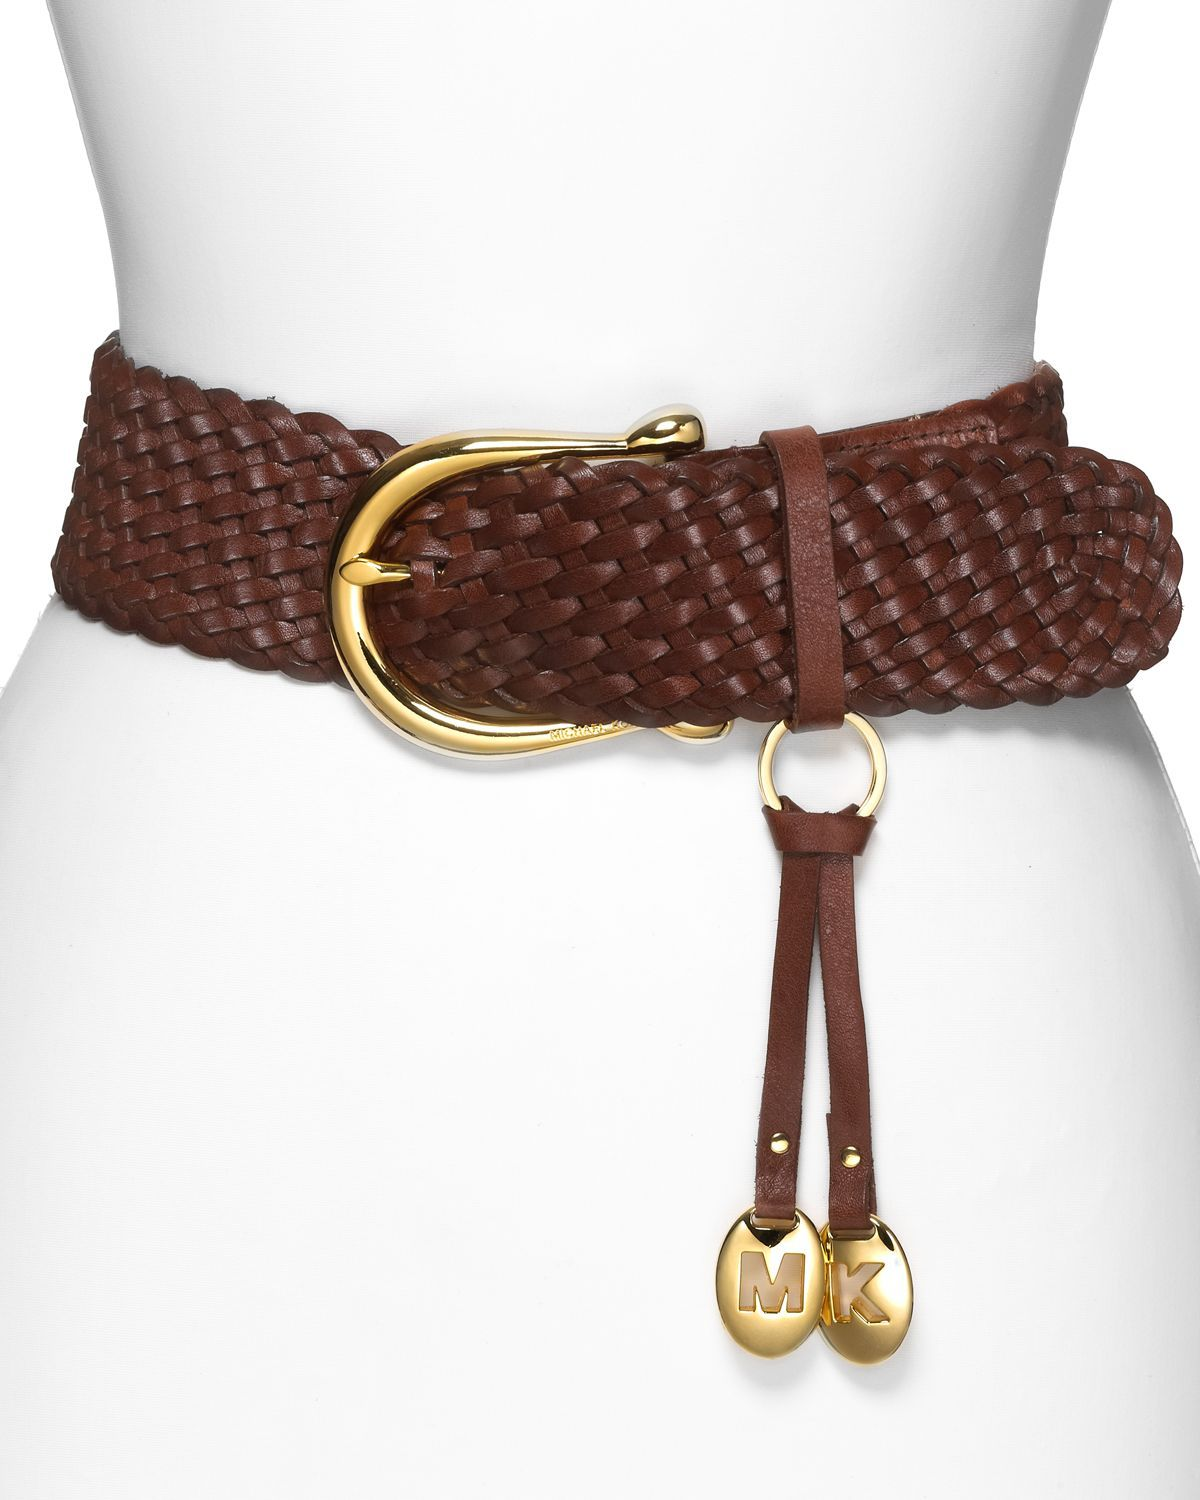 From Michael Michael Kors This Logo Belt Is Finished With A Horseshoe Buckle And A Dangling M And Braided Leather Belt Womens Leather Belt Braided Leather